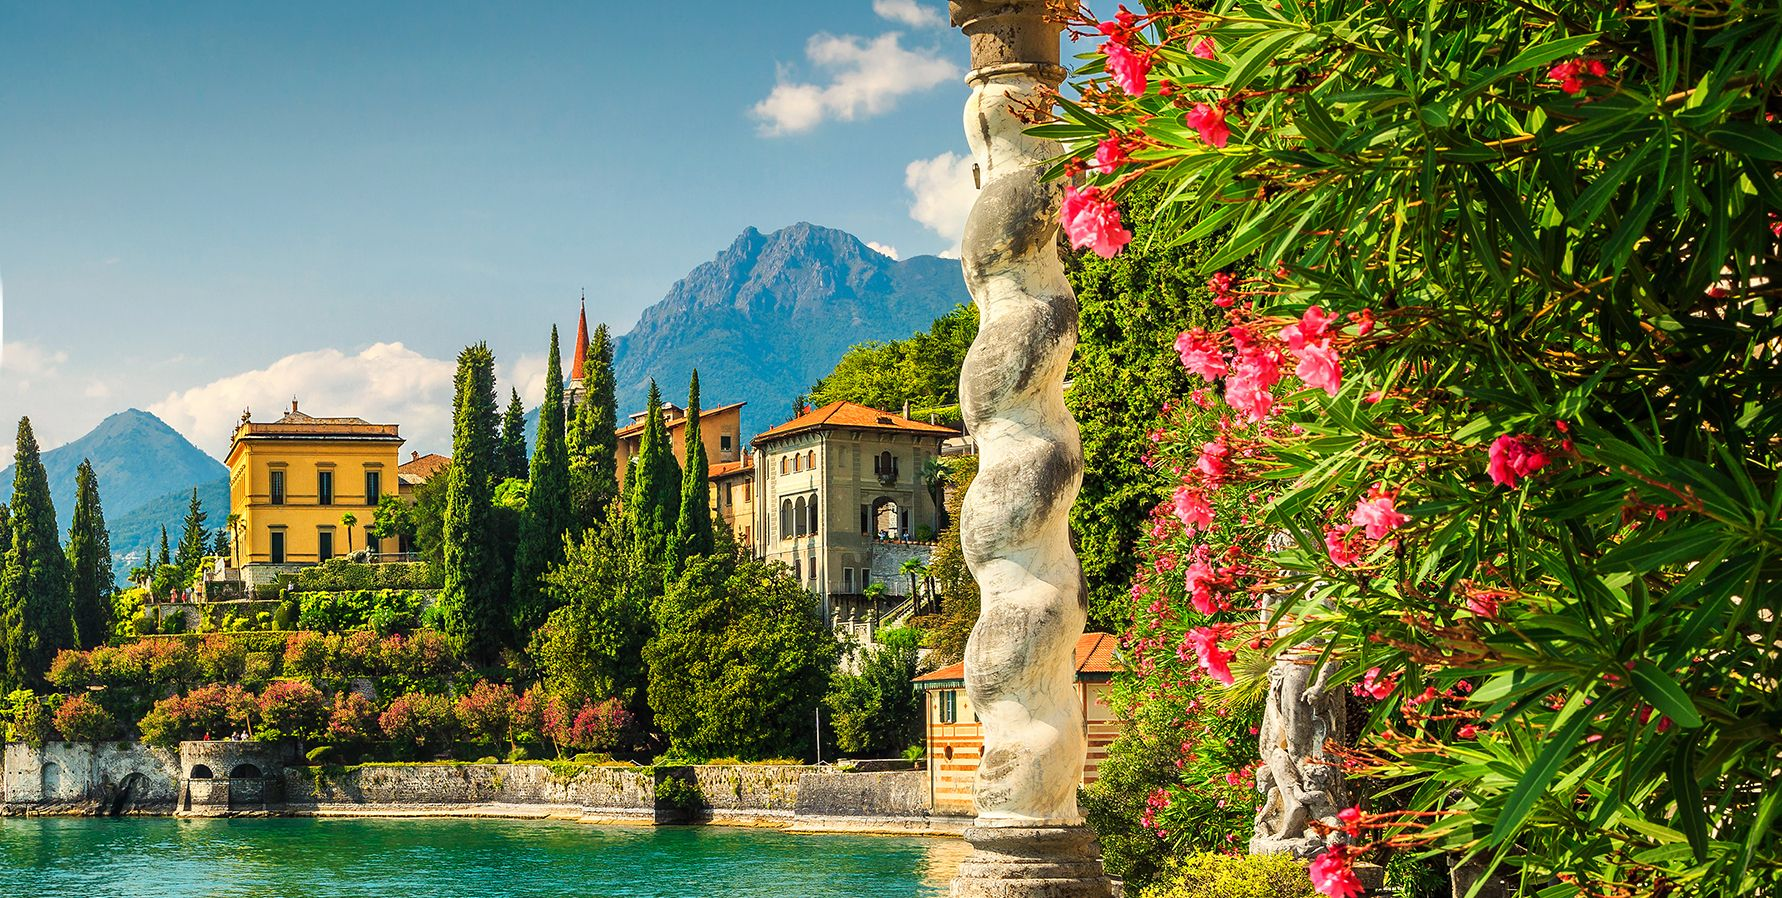 The only way to see Italy's northern lakes, and surrounding gardens, all in one go